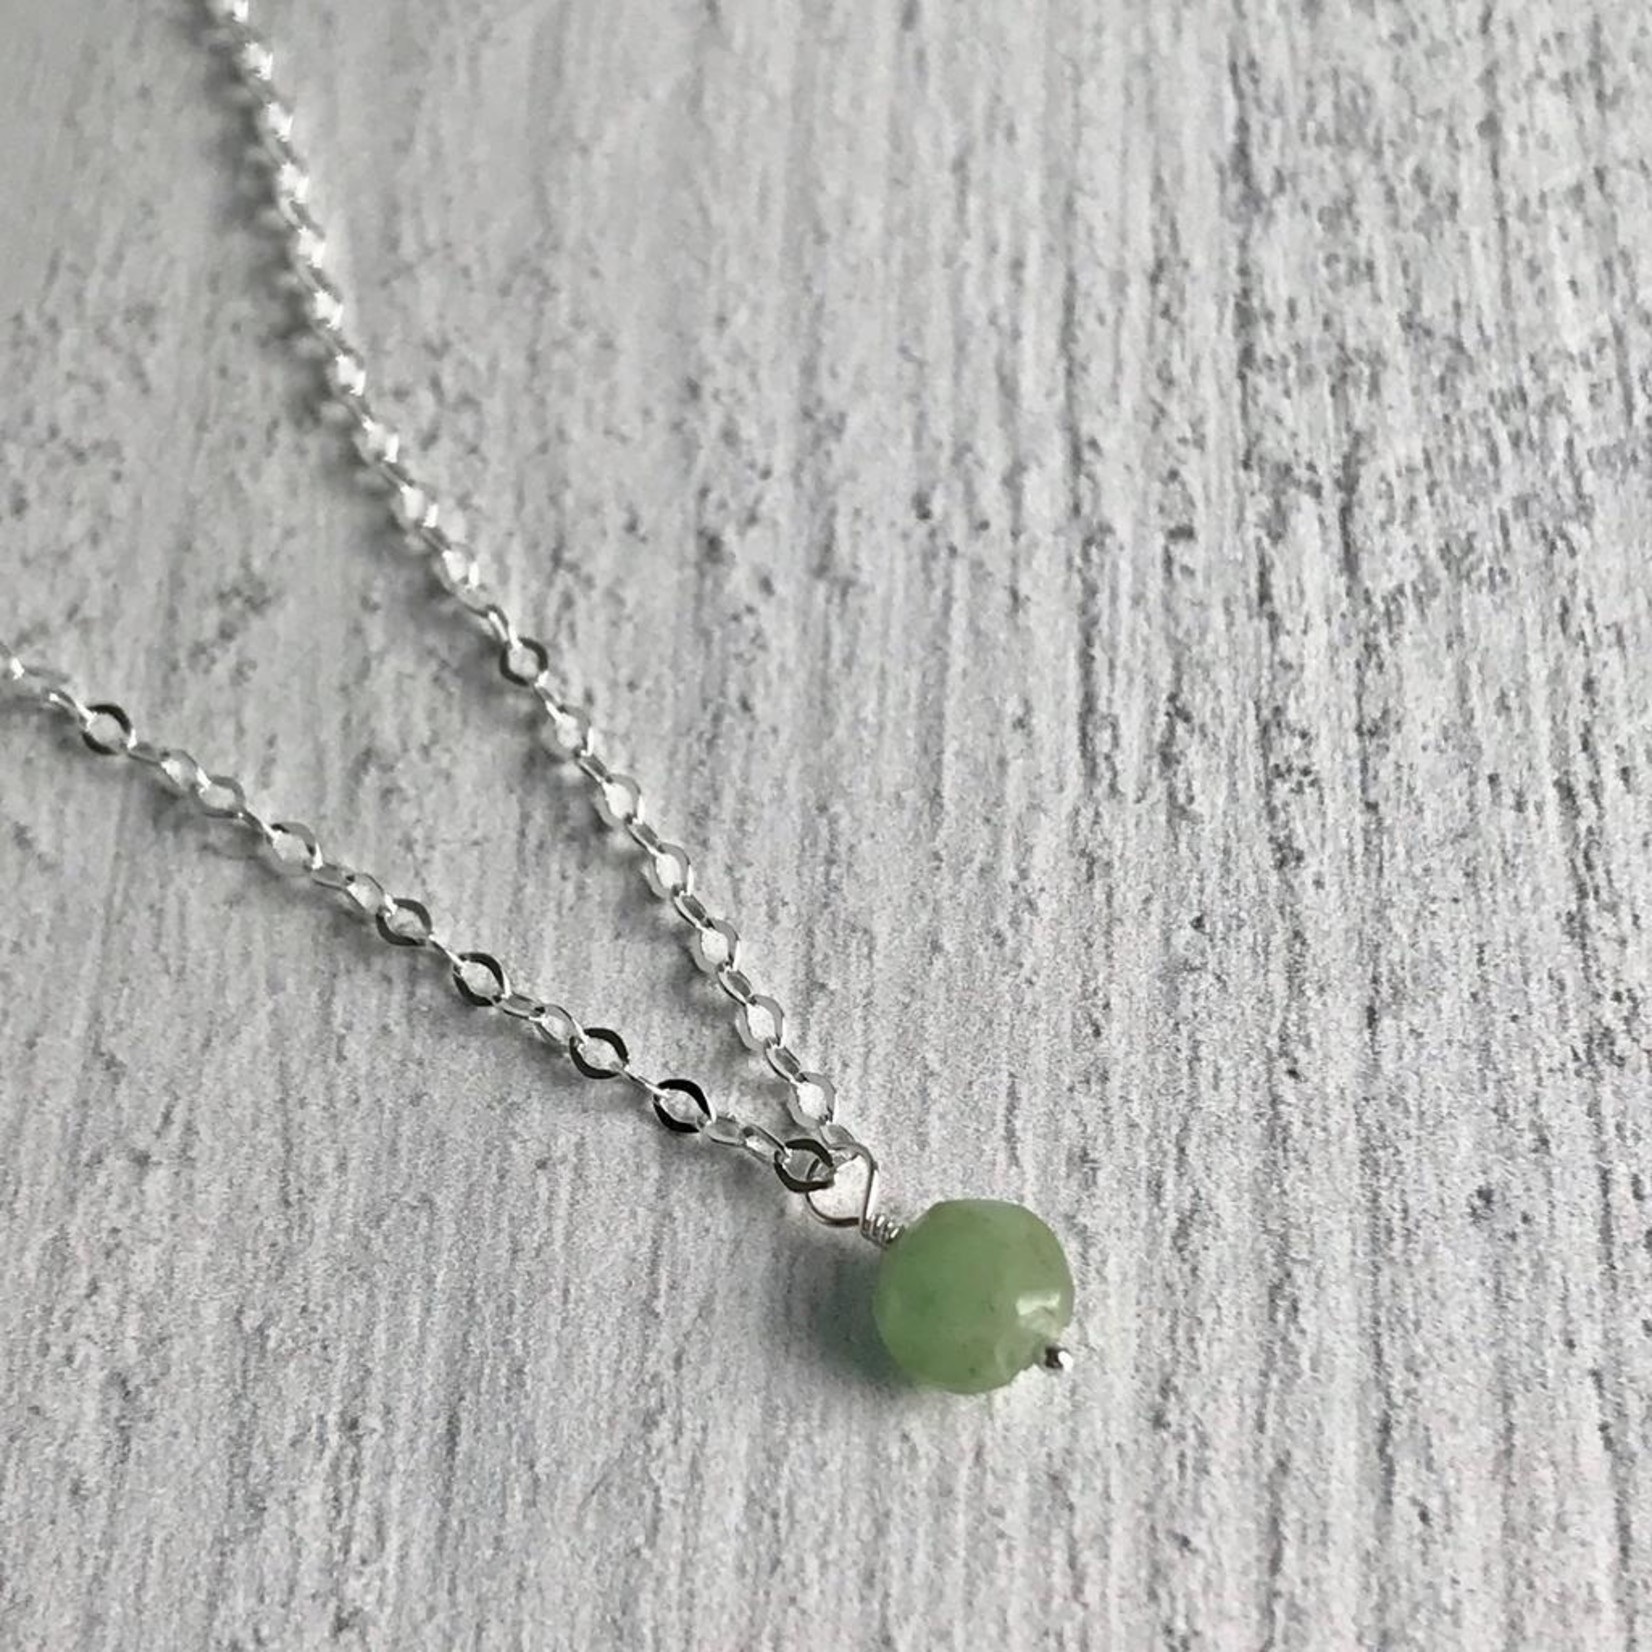 Handmade Silver Necklace with Emerald Coin